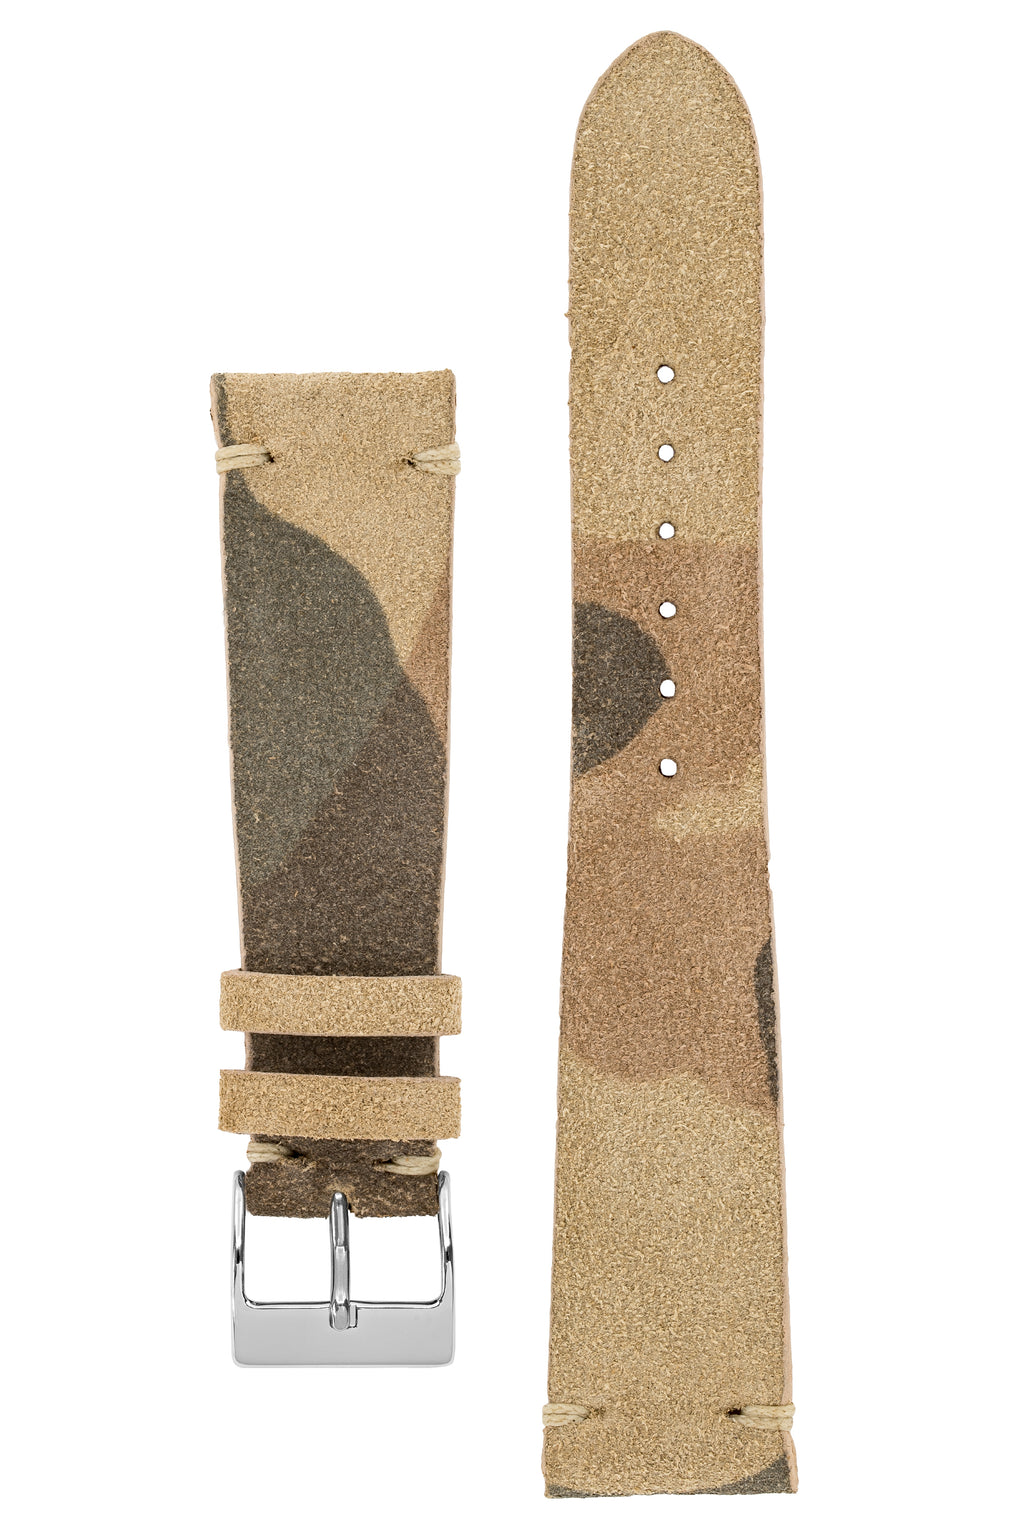 JPM Italian Vintage Suede Leather Watch Strap in BEIGE CAMOUFLAGE